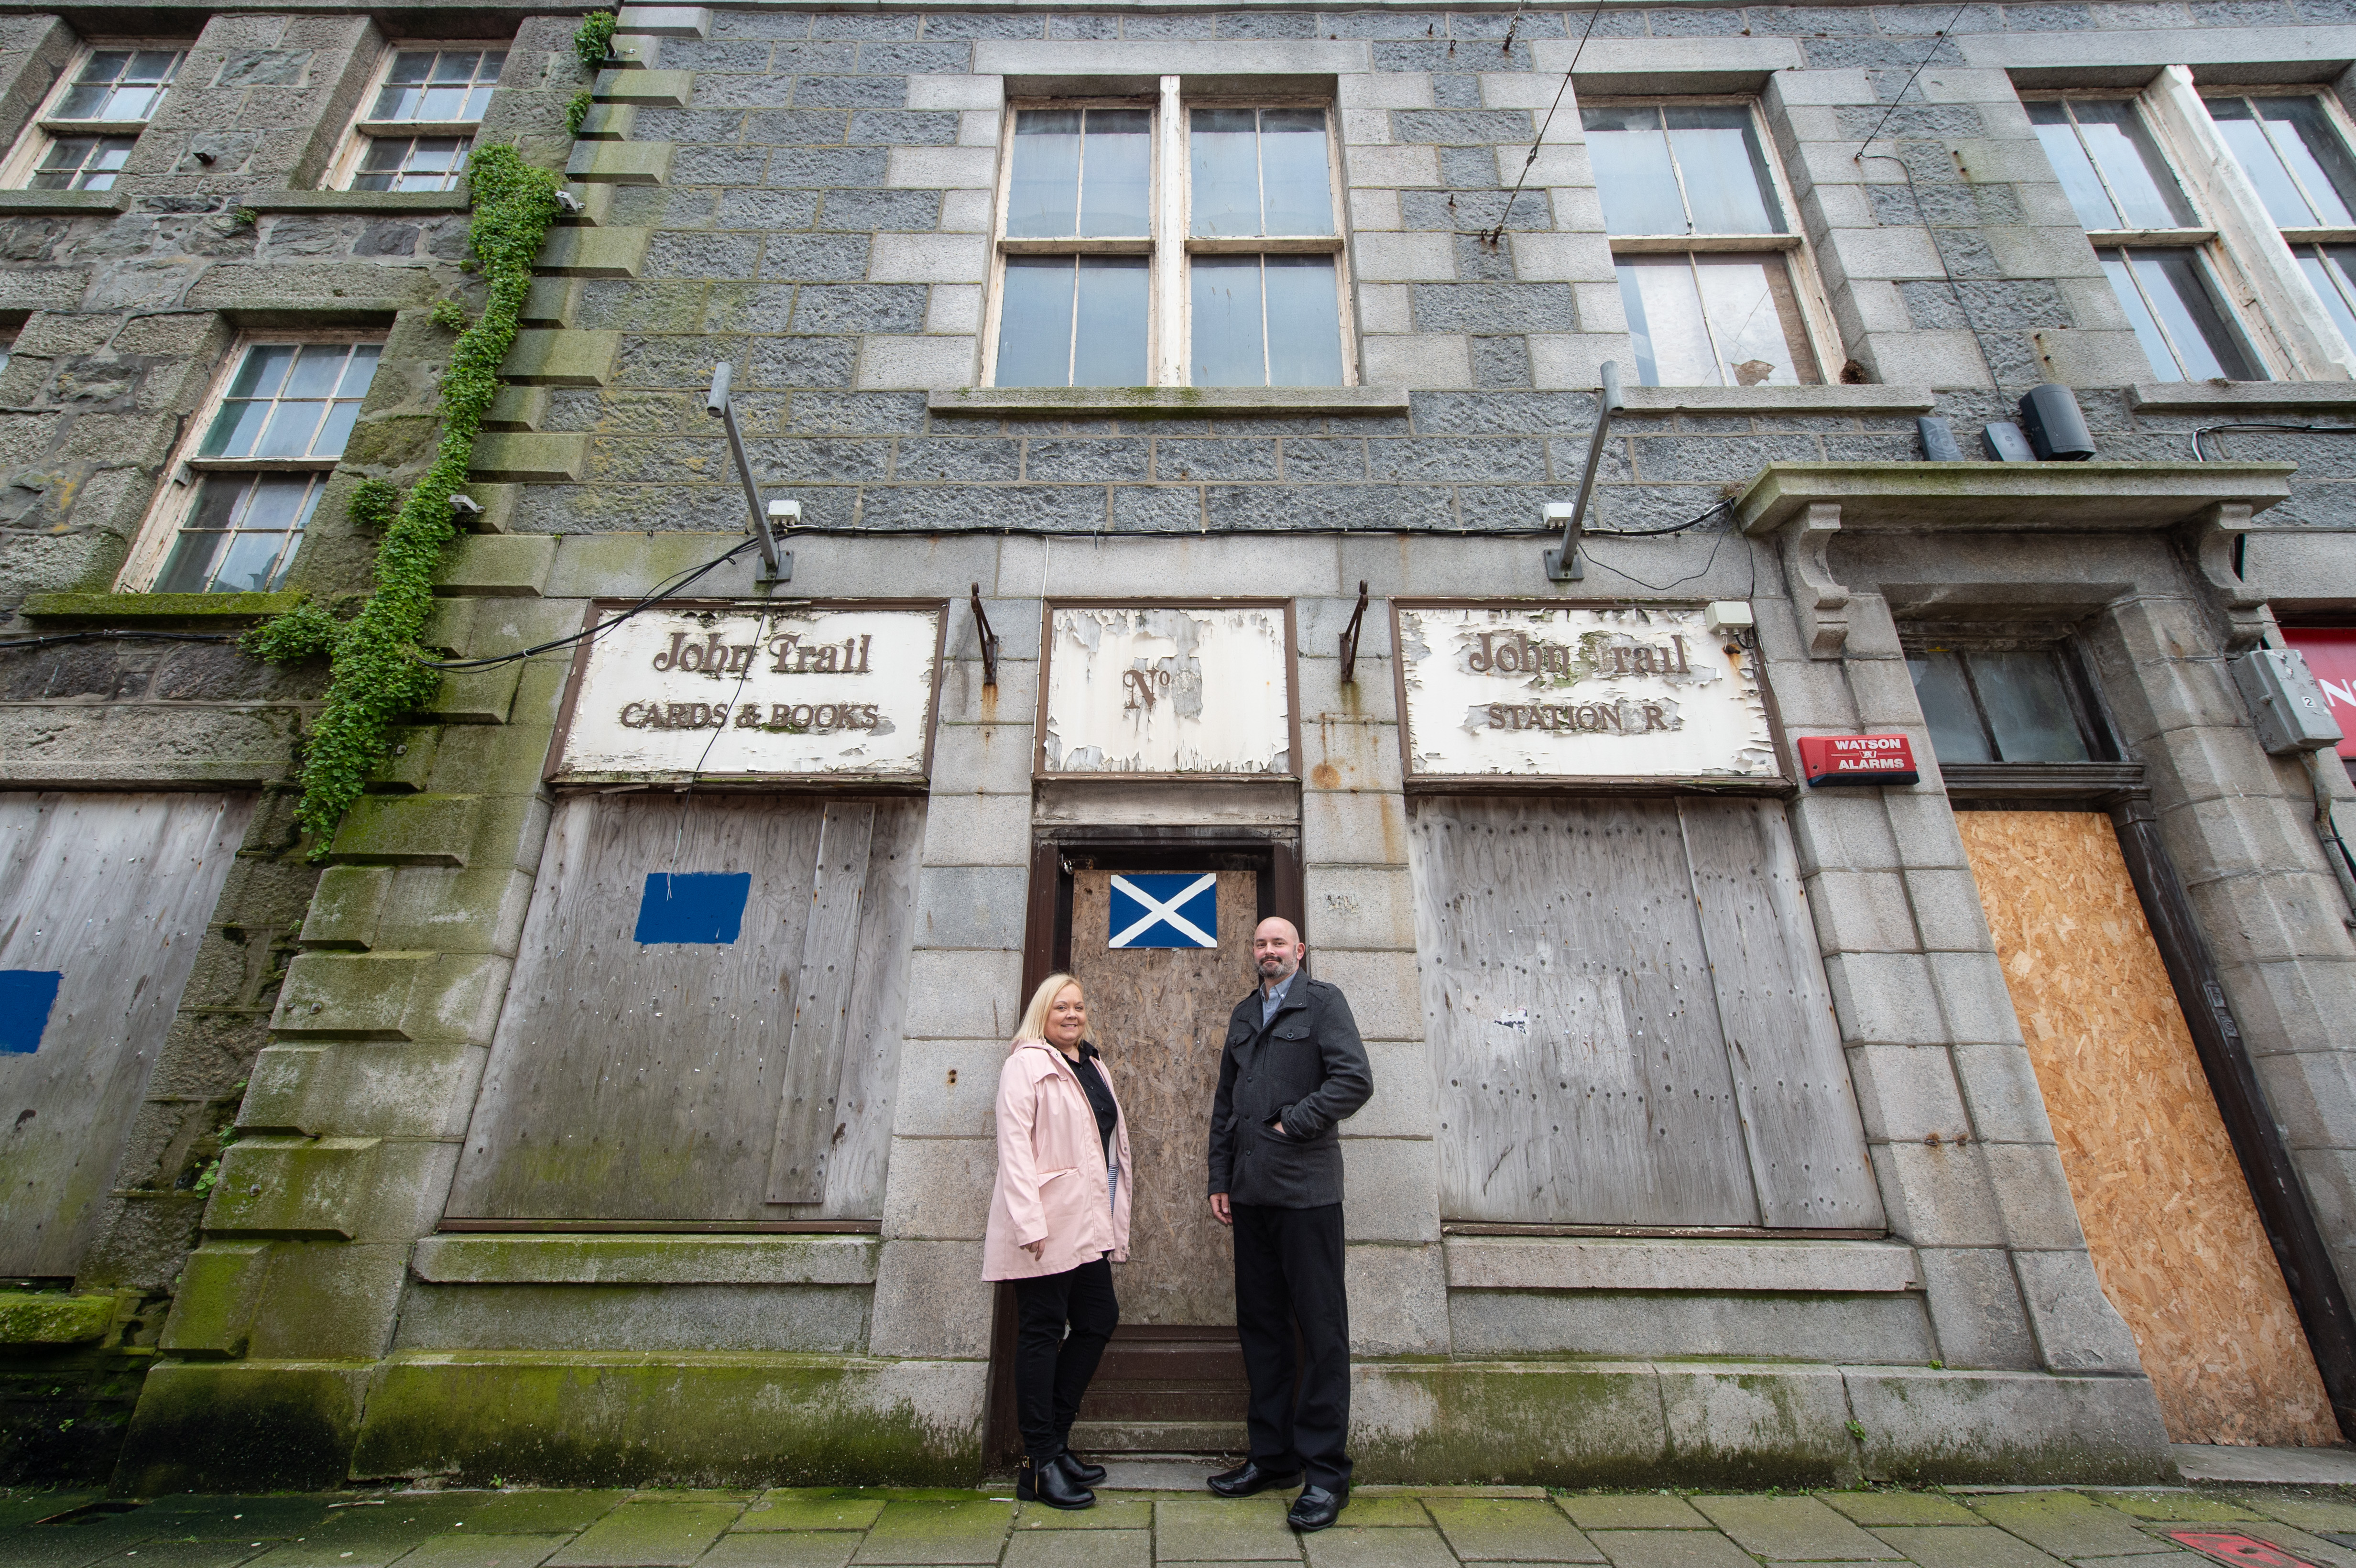 Hoteliers, David and Sharon Watt of the Davron Hotel, Roseheart are transforming the run down John Trail Building in Fraserburgh into a new hotel.